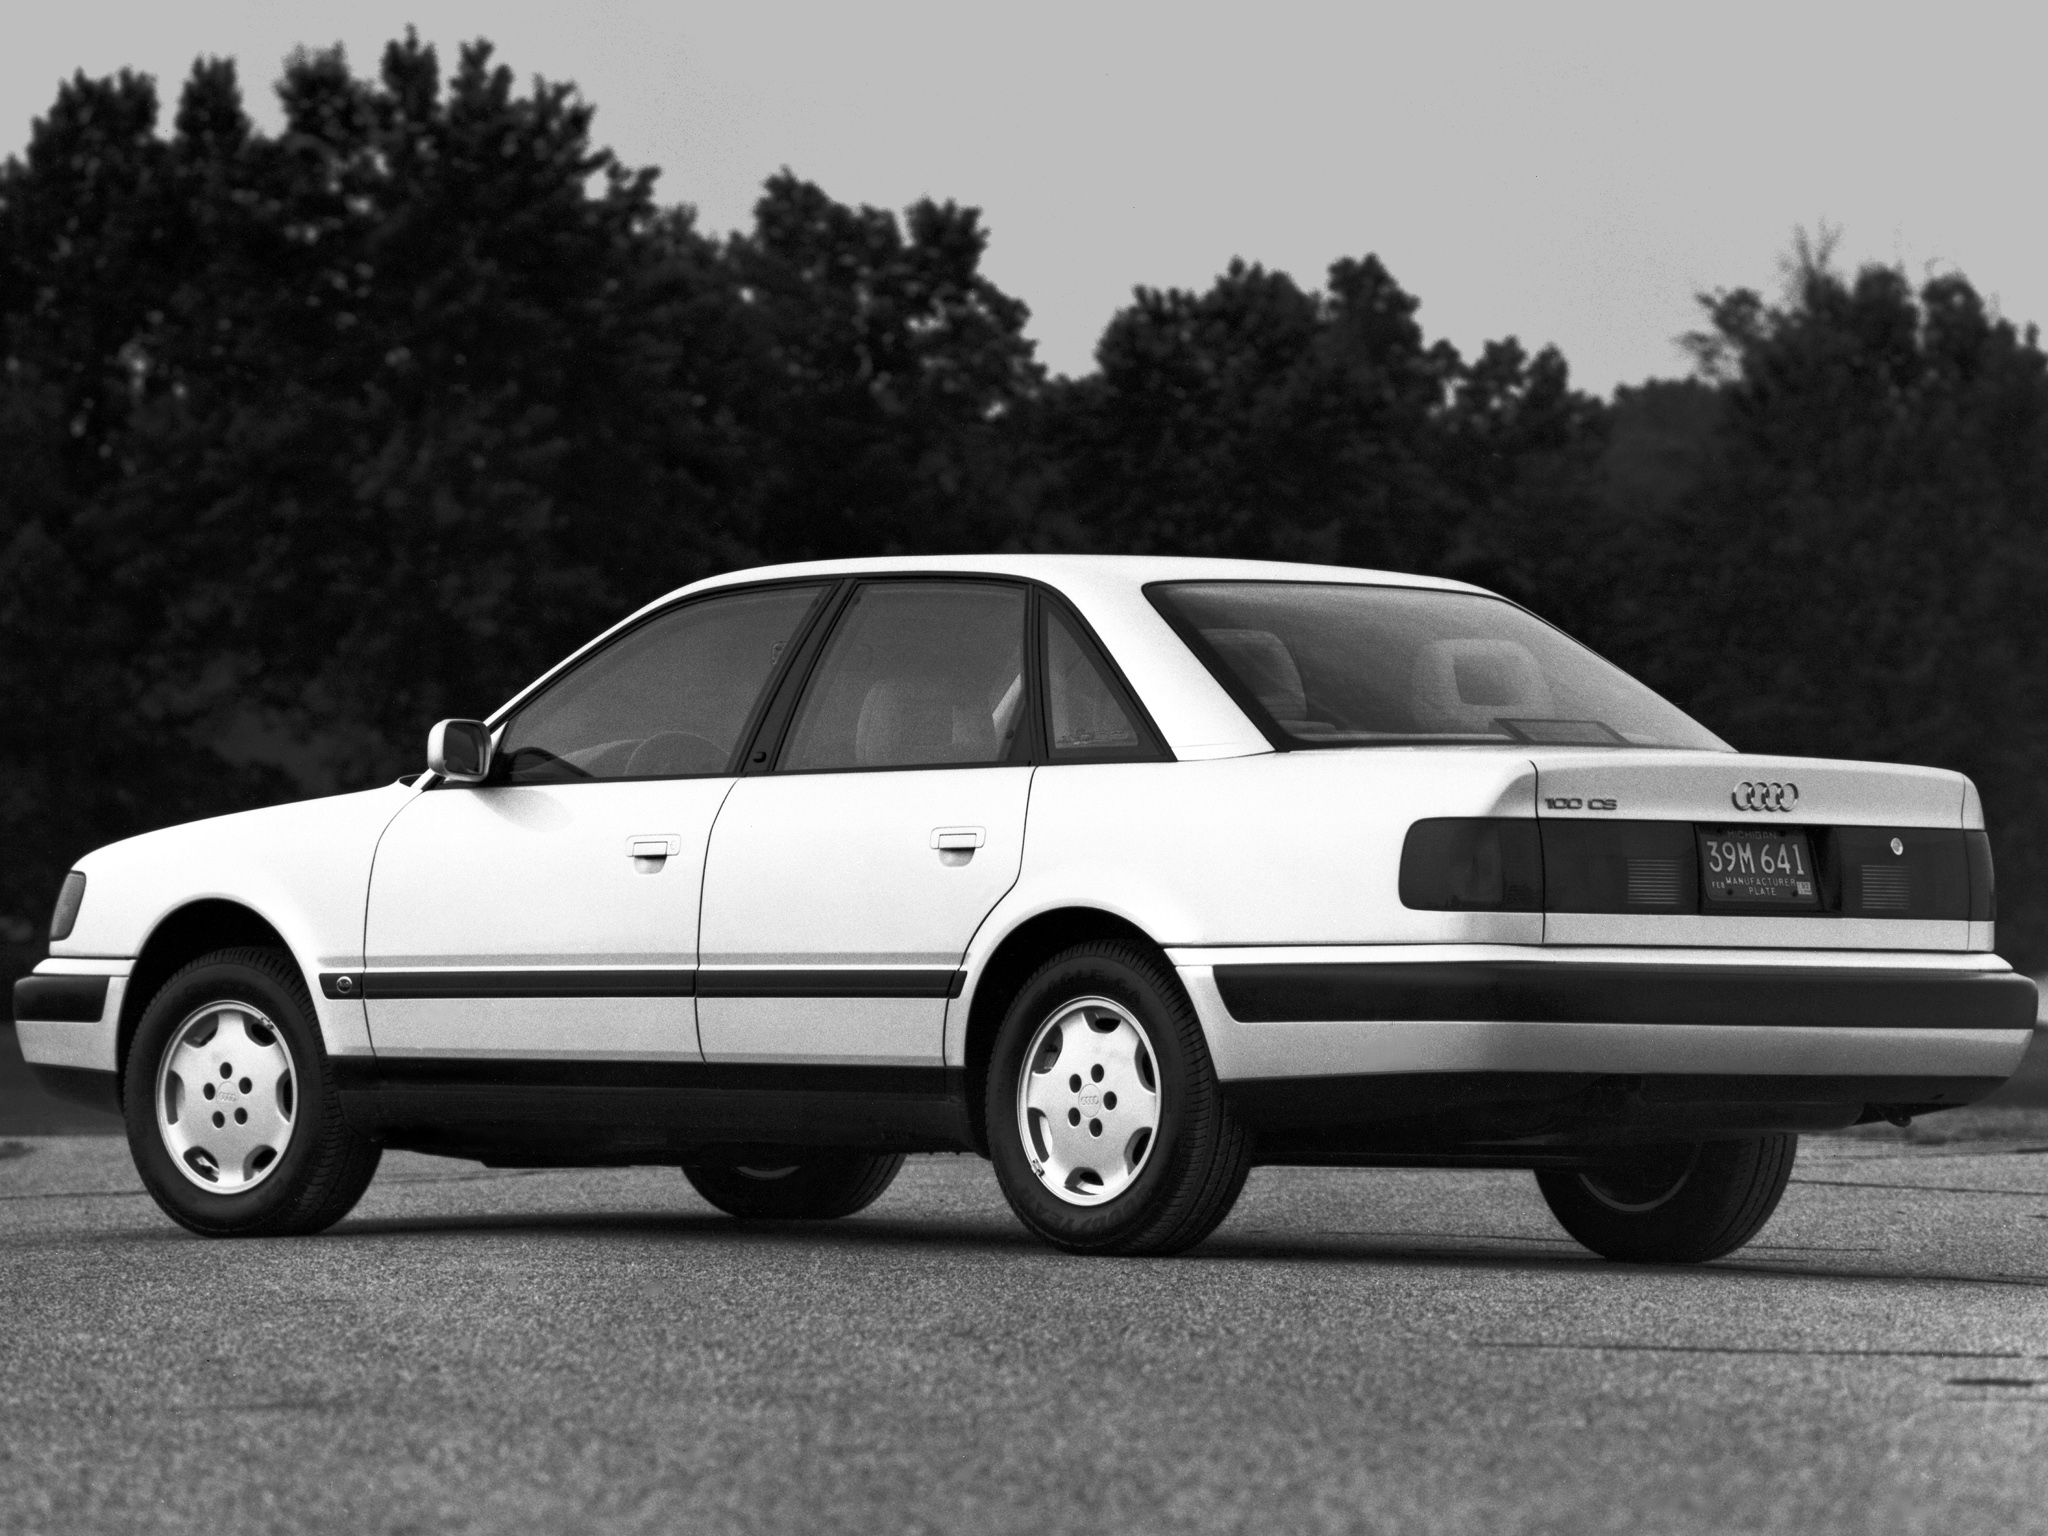 audi 100 (4a,c4) 1990 pictures #7